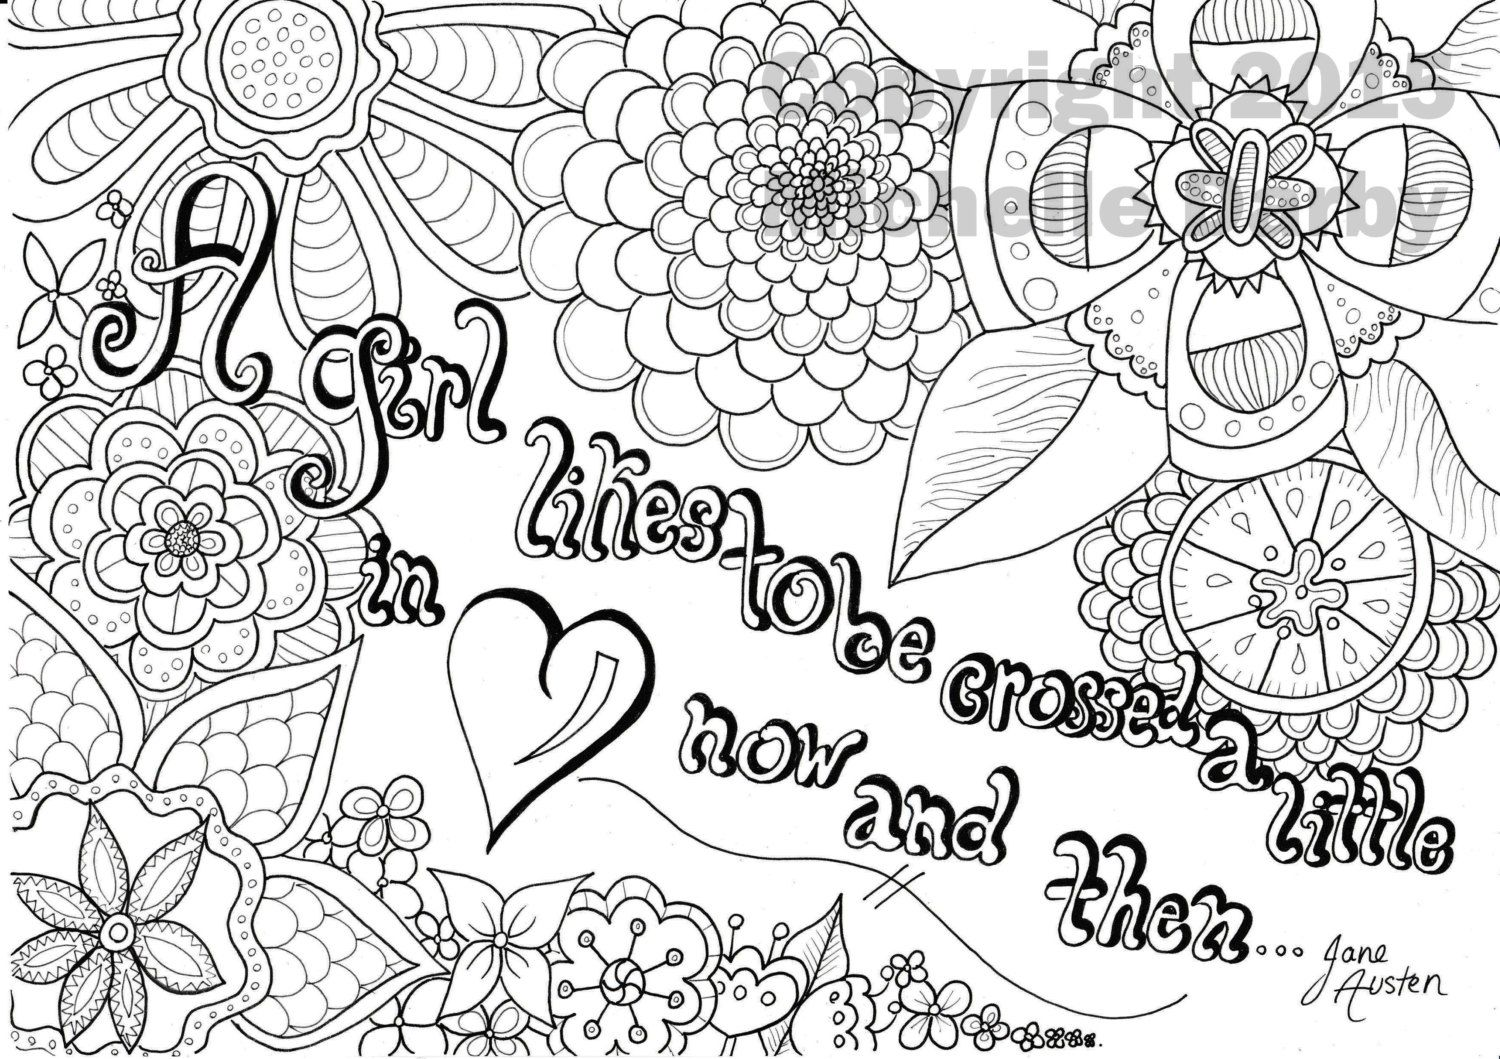 A Girl Crossed In Love Jane Austen Quote Coloring Page Coloring